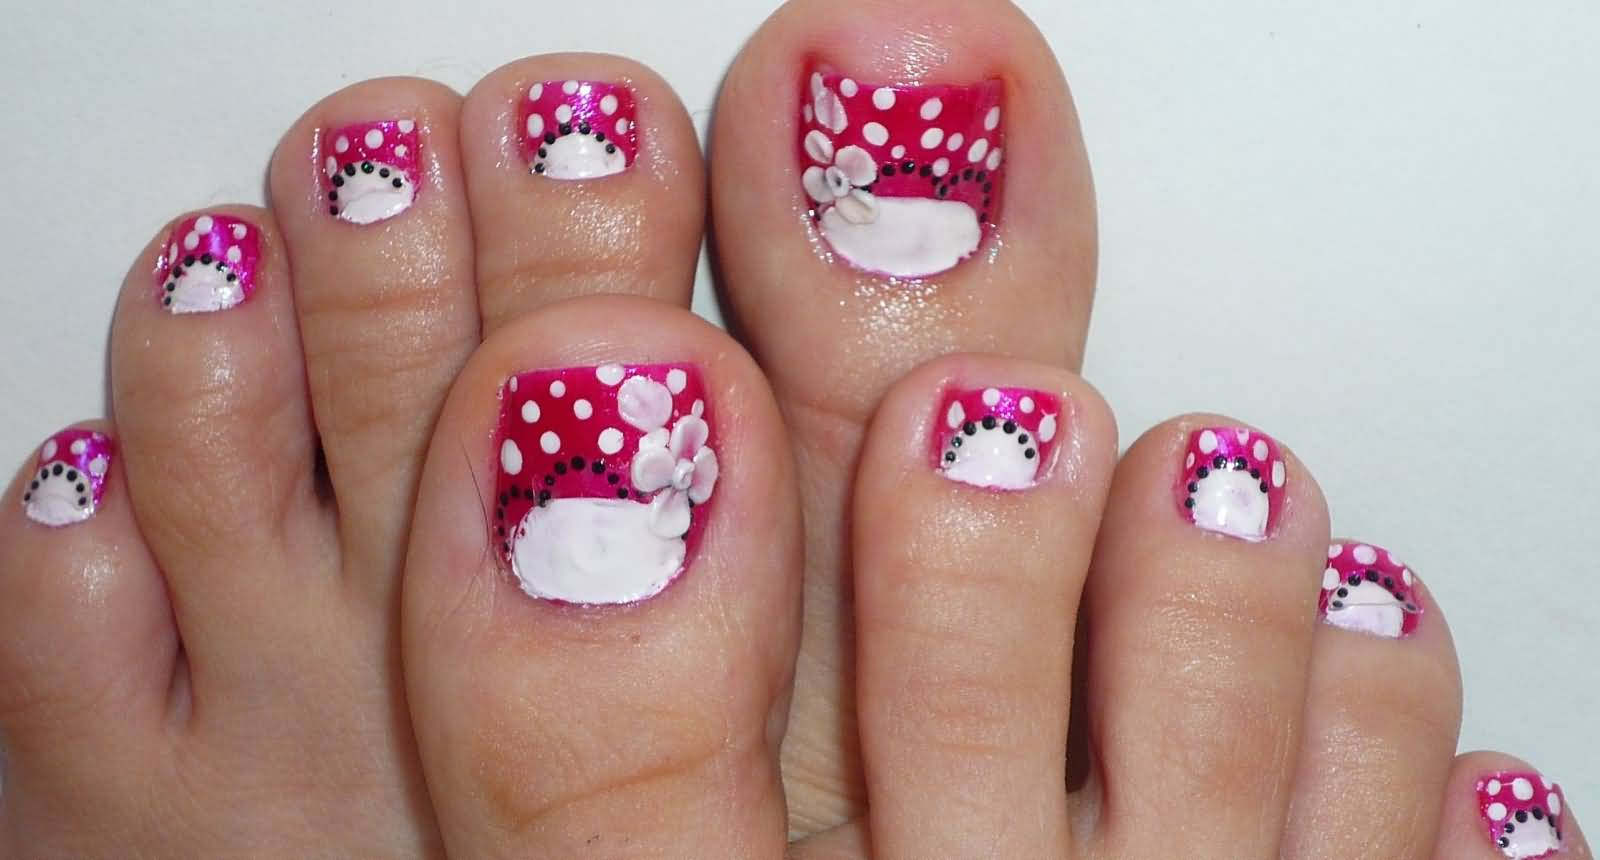 50+ Most Beautiful And Stylish Flower Toe Nail Art Design Ideas